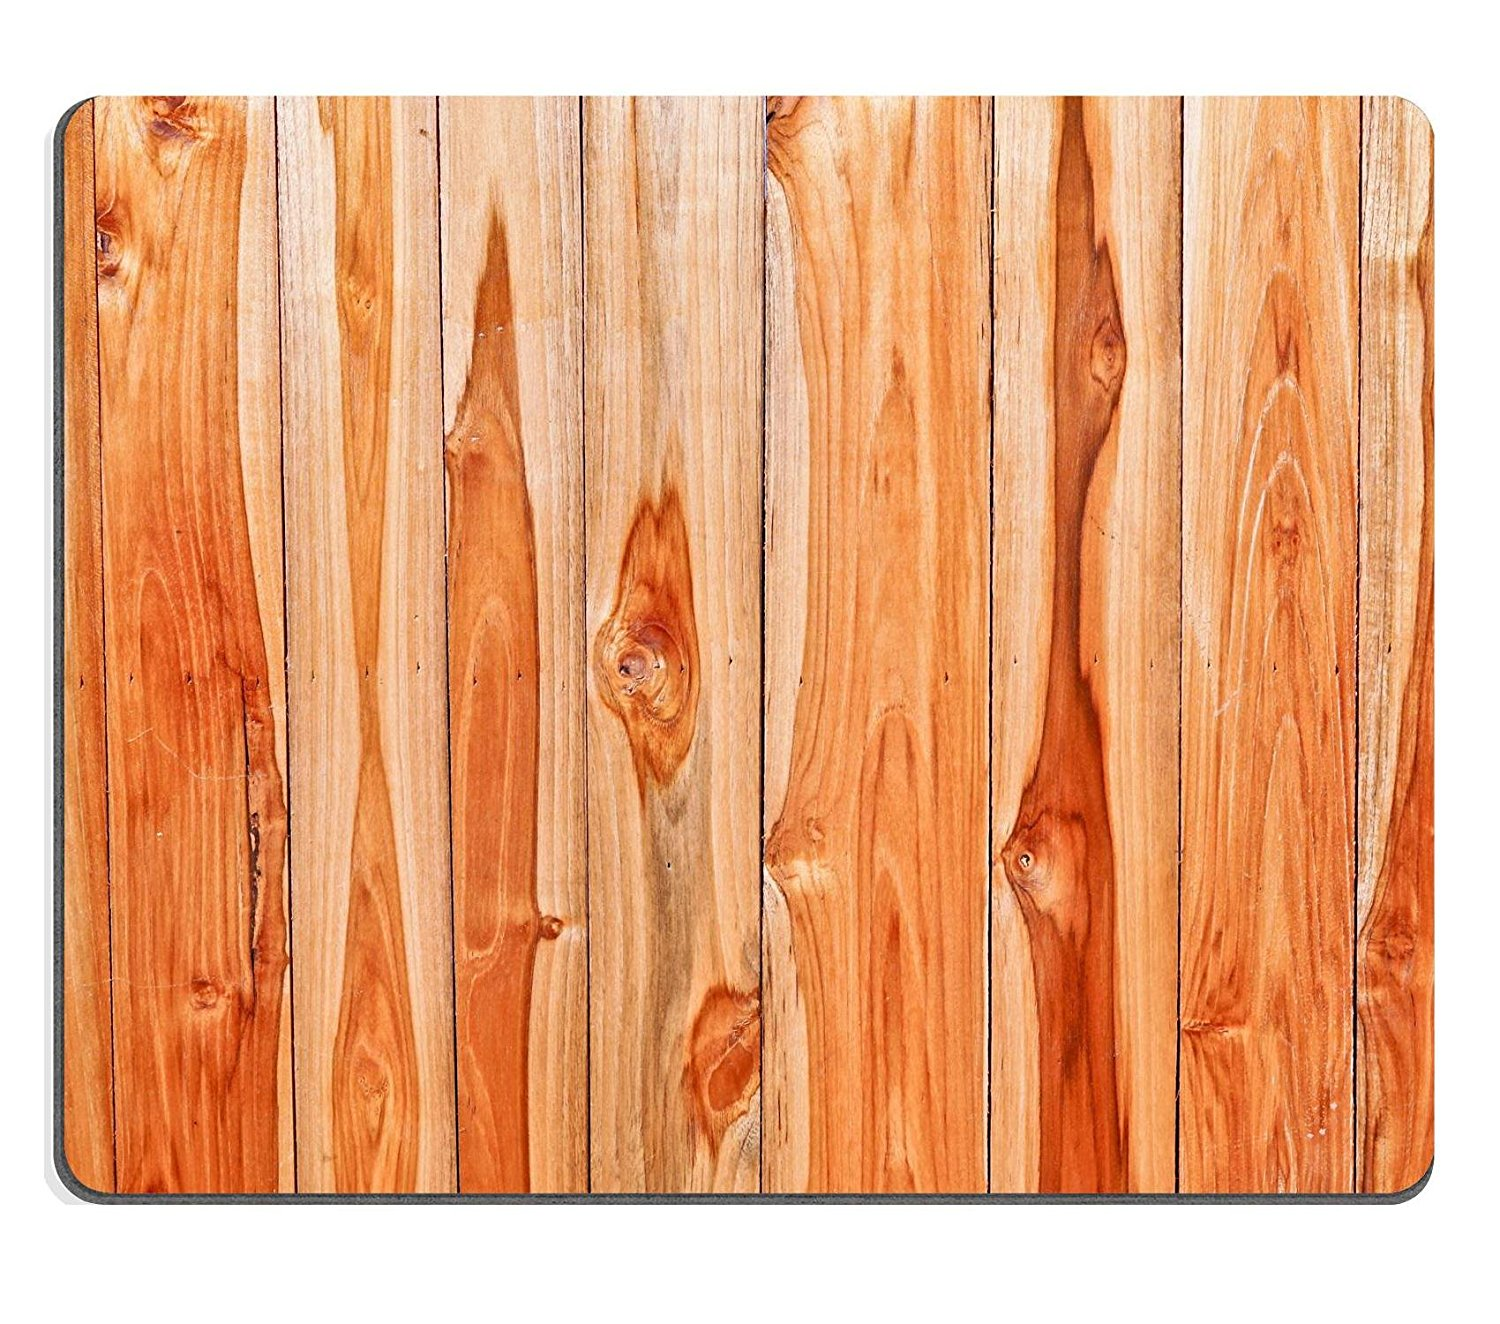 Teak Wandplank Cheap Burma Teak Wood Plank Find Burma Teak Wood Plank Deals On